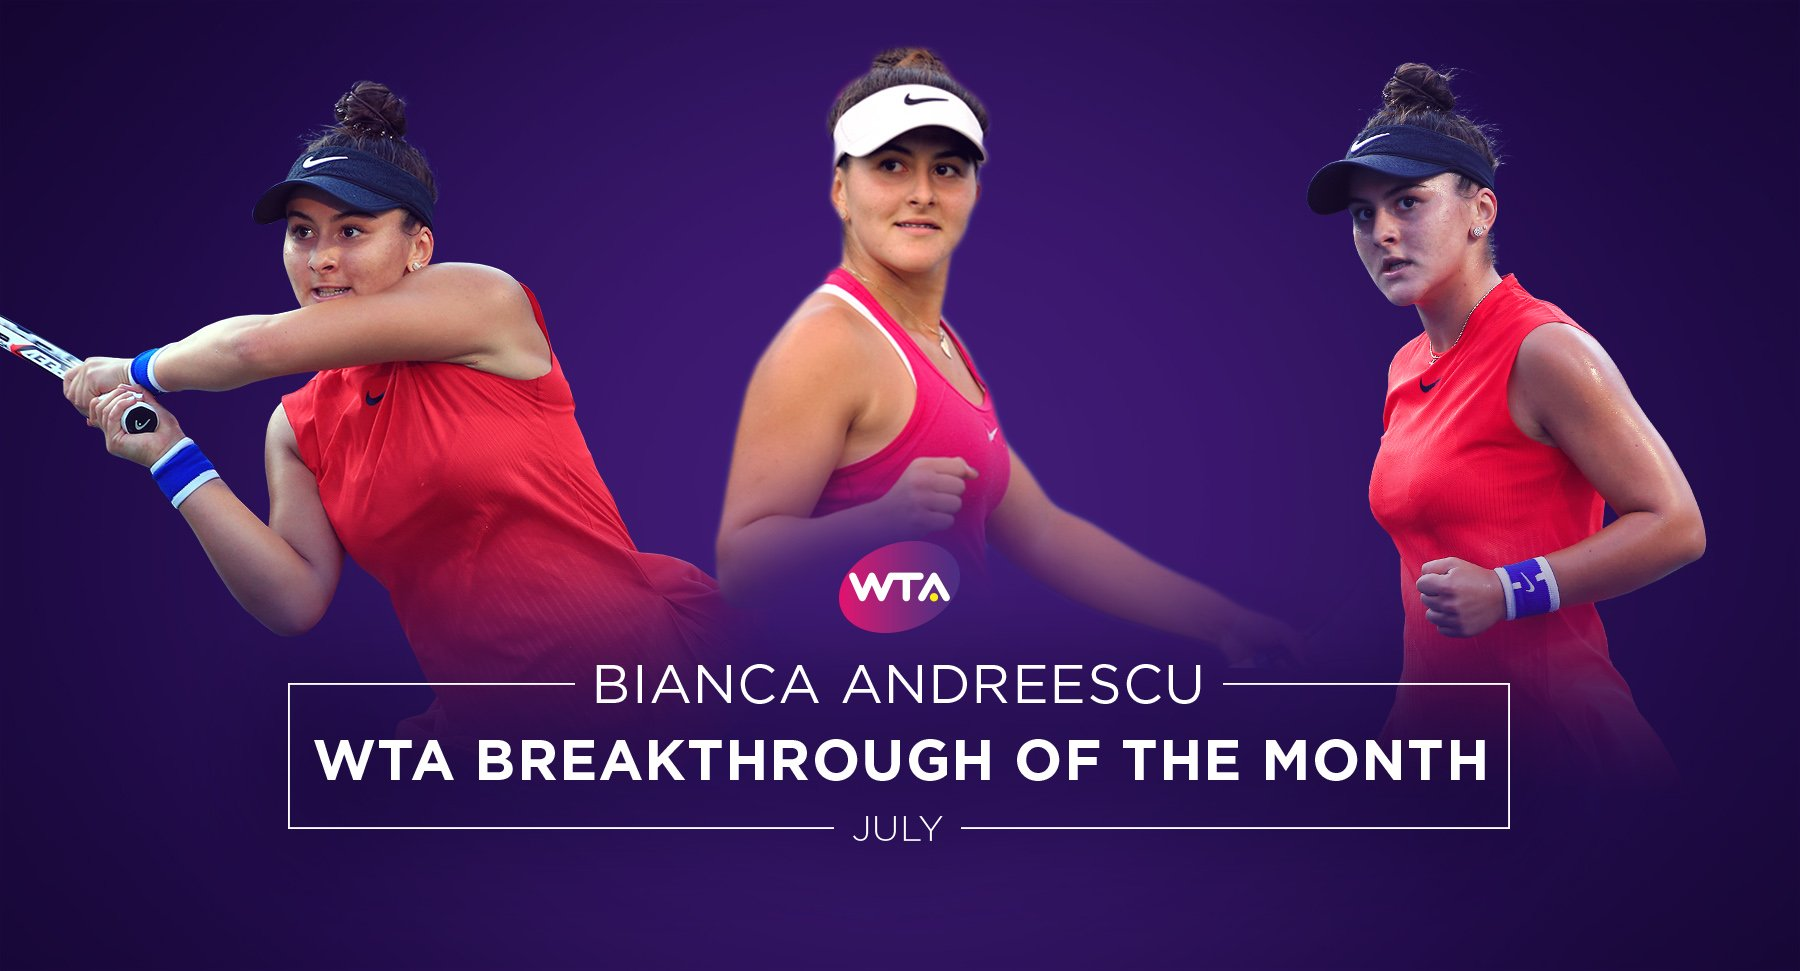 .@Bandreescu_ voted July's #WTA Breakthrough of the Month--> https://t.co/y60KDbDE5W �� https://t.co/x2qWmpi48S